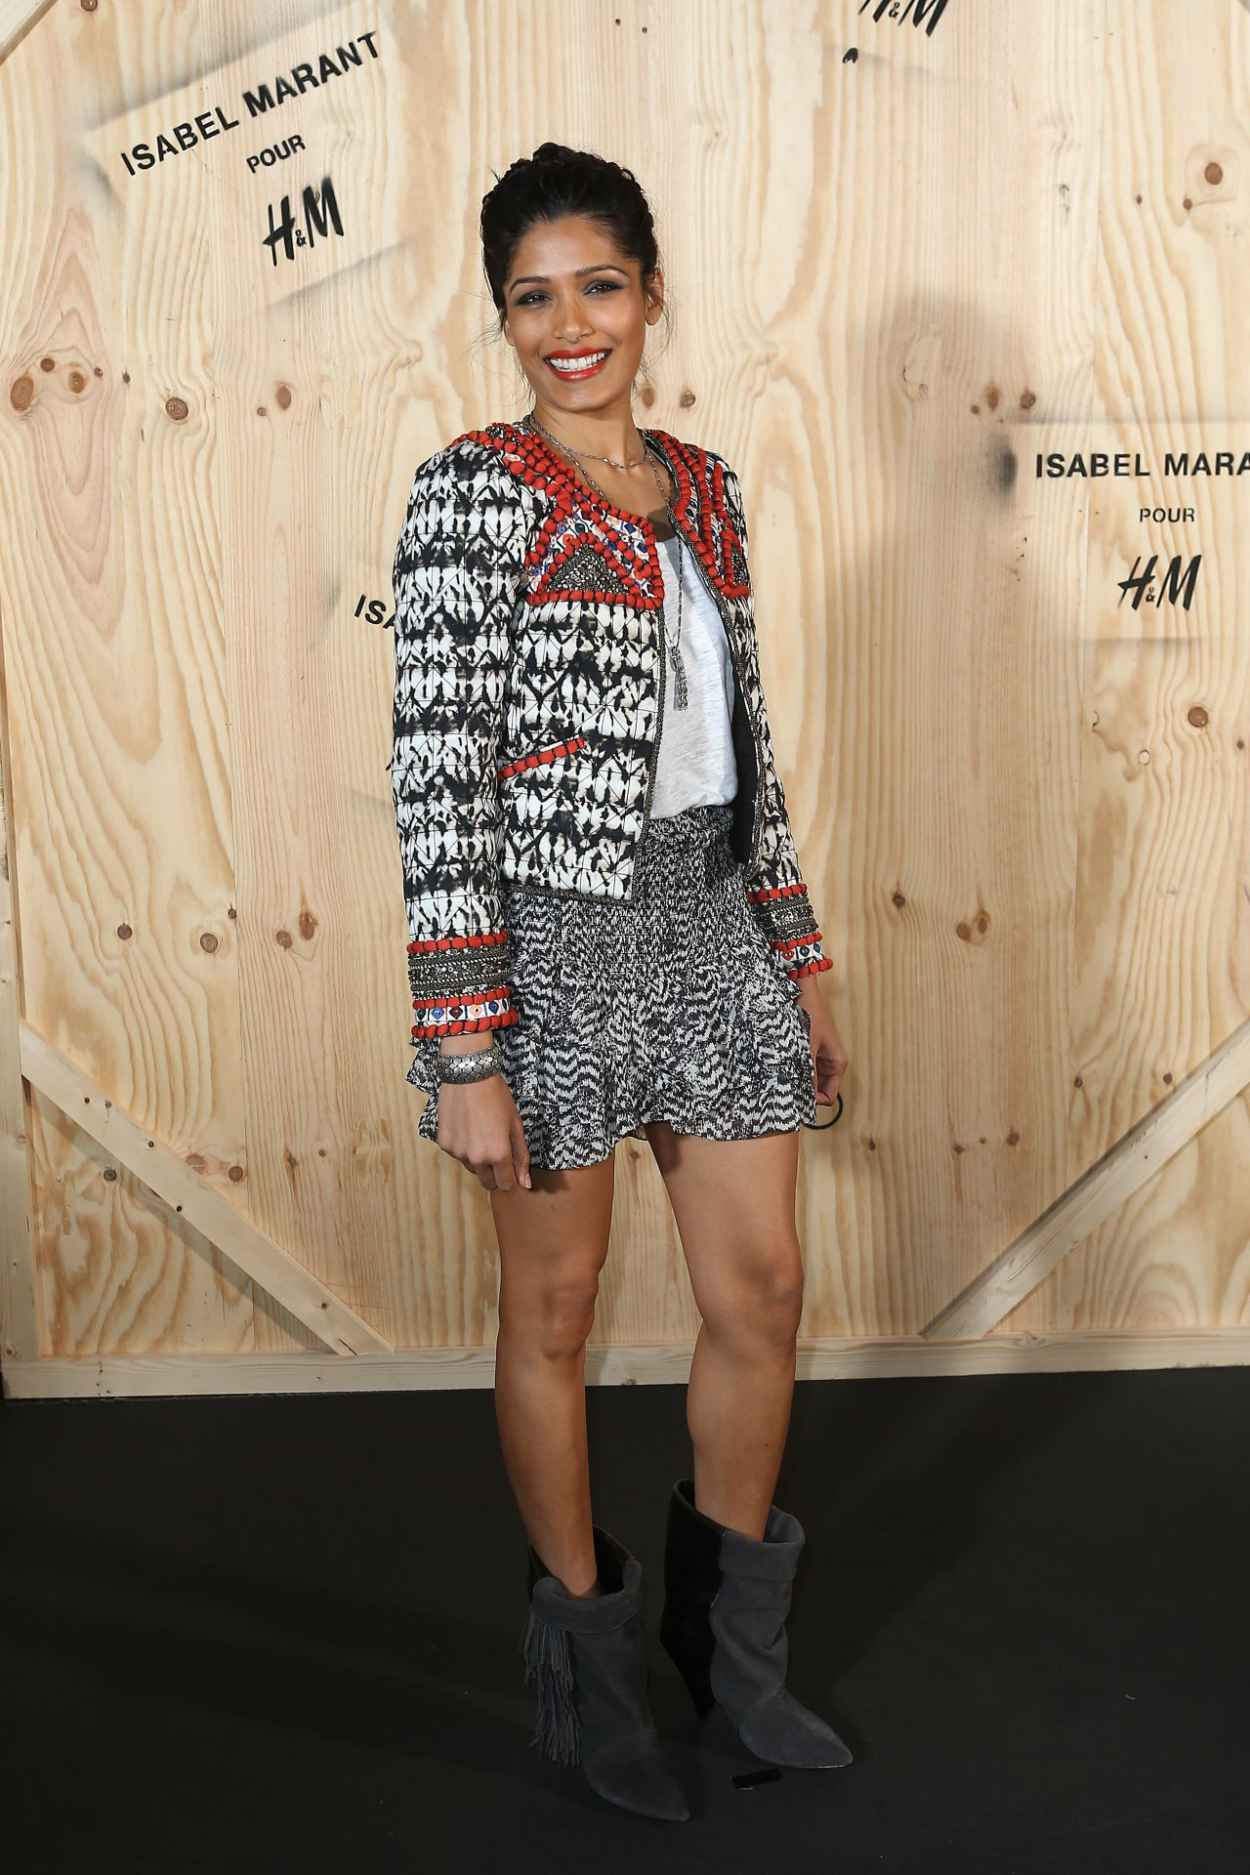 Freida Pinto at Isabel Marant for H&M Photocall in Paris-1